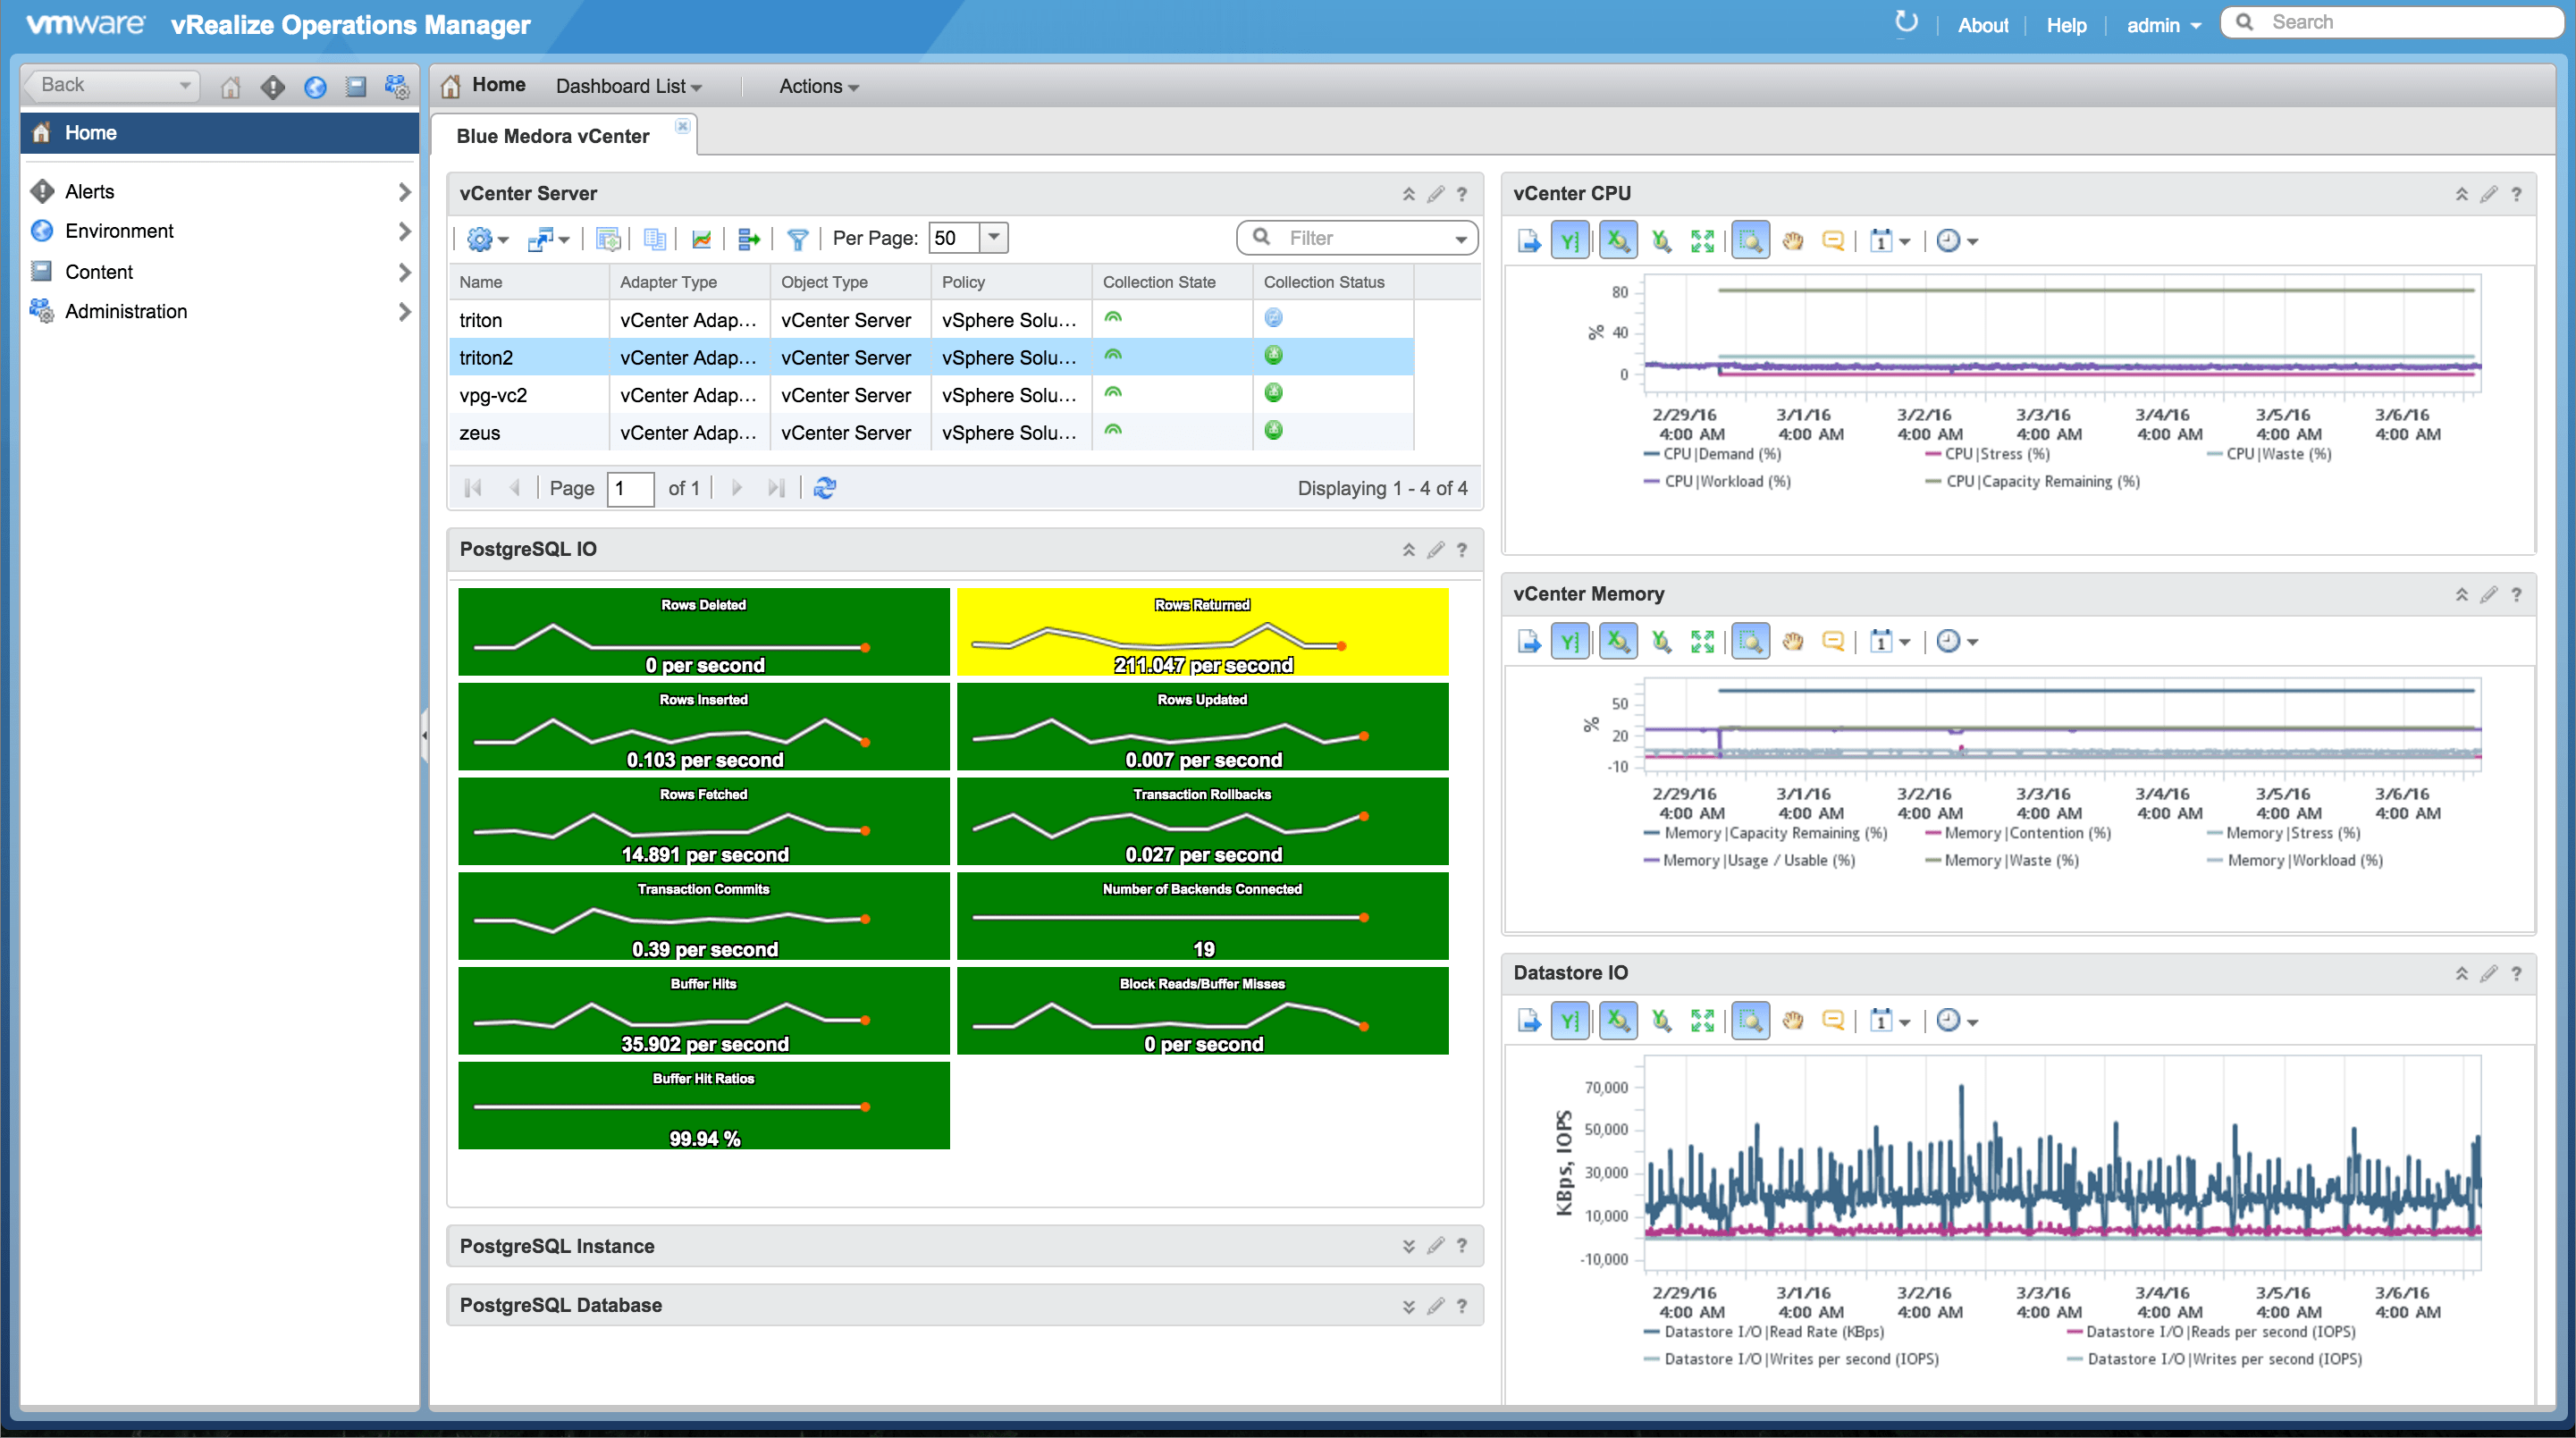 Image depicts Network Performance Management example with VMware's vRealize Operations Manager dashboard.